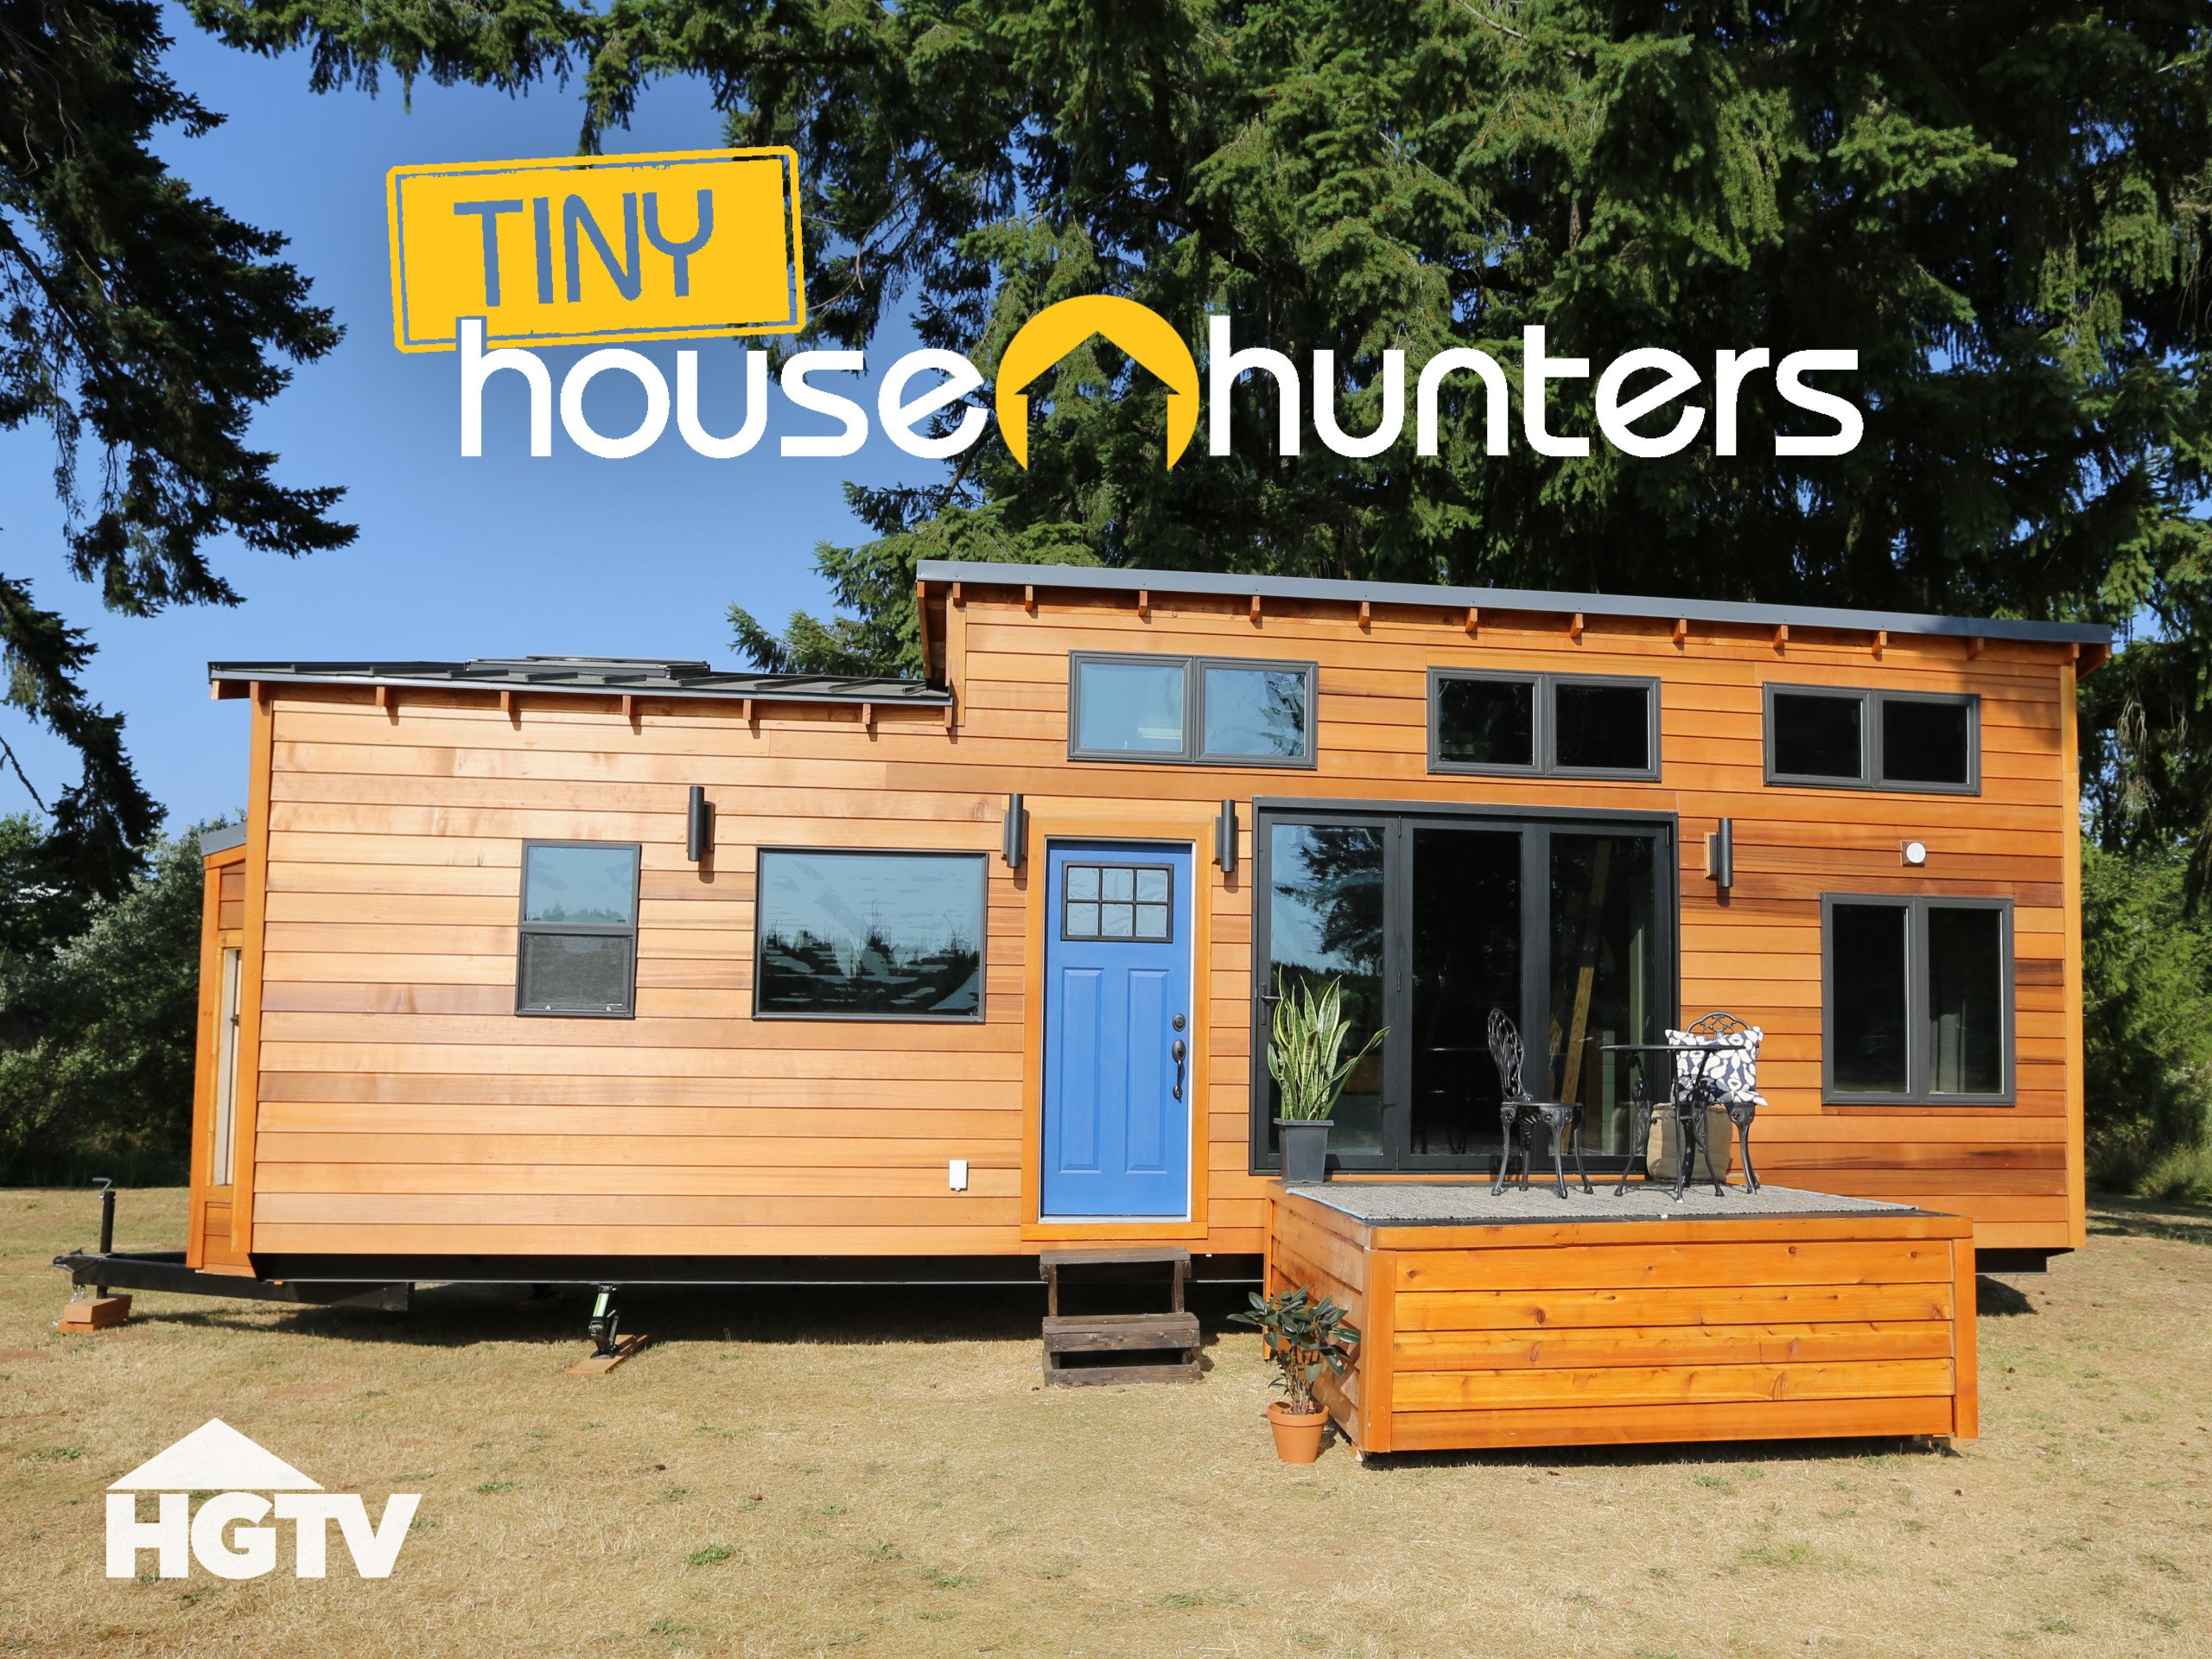 tiny house hunters full episodes free online